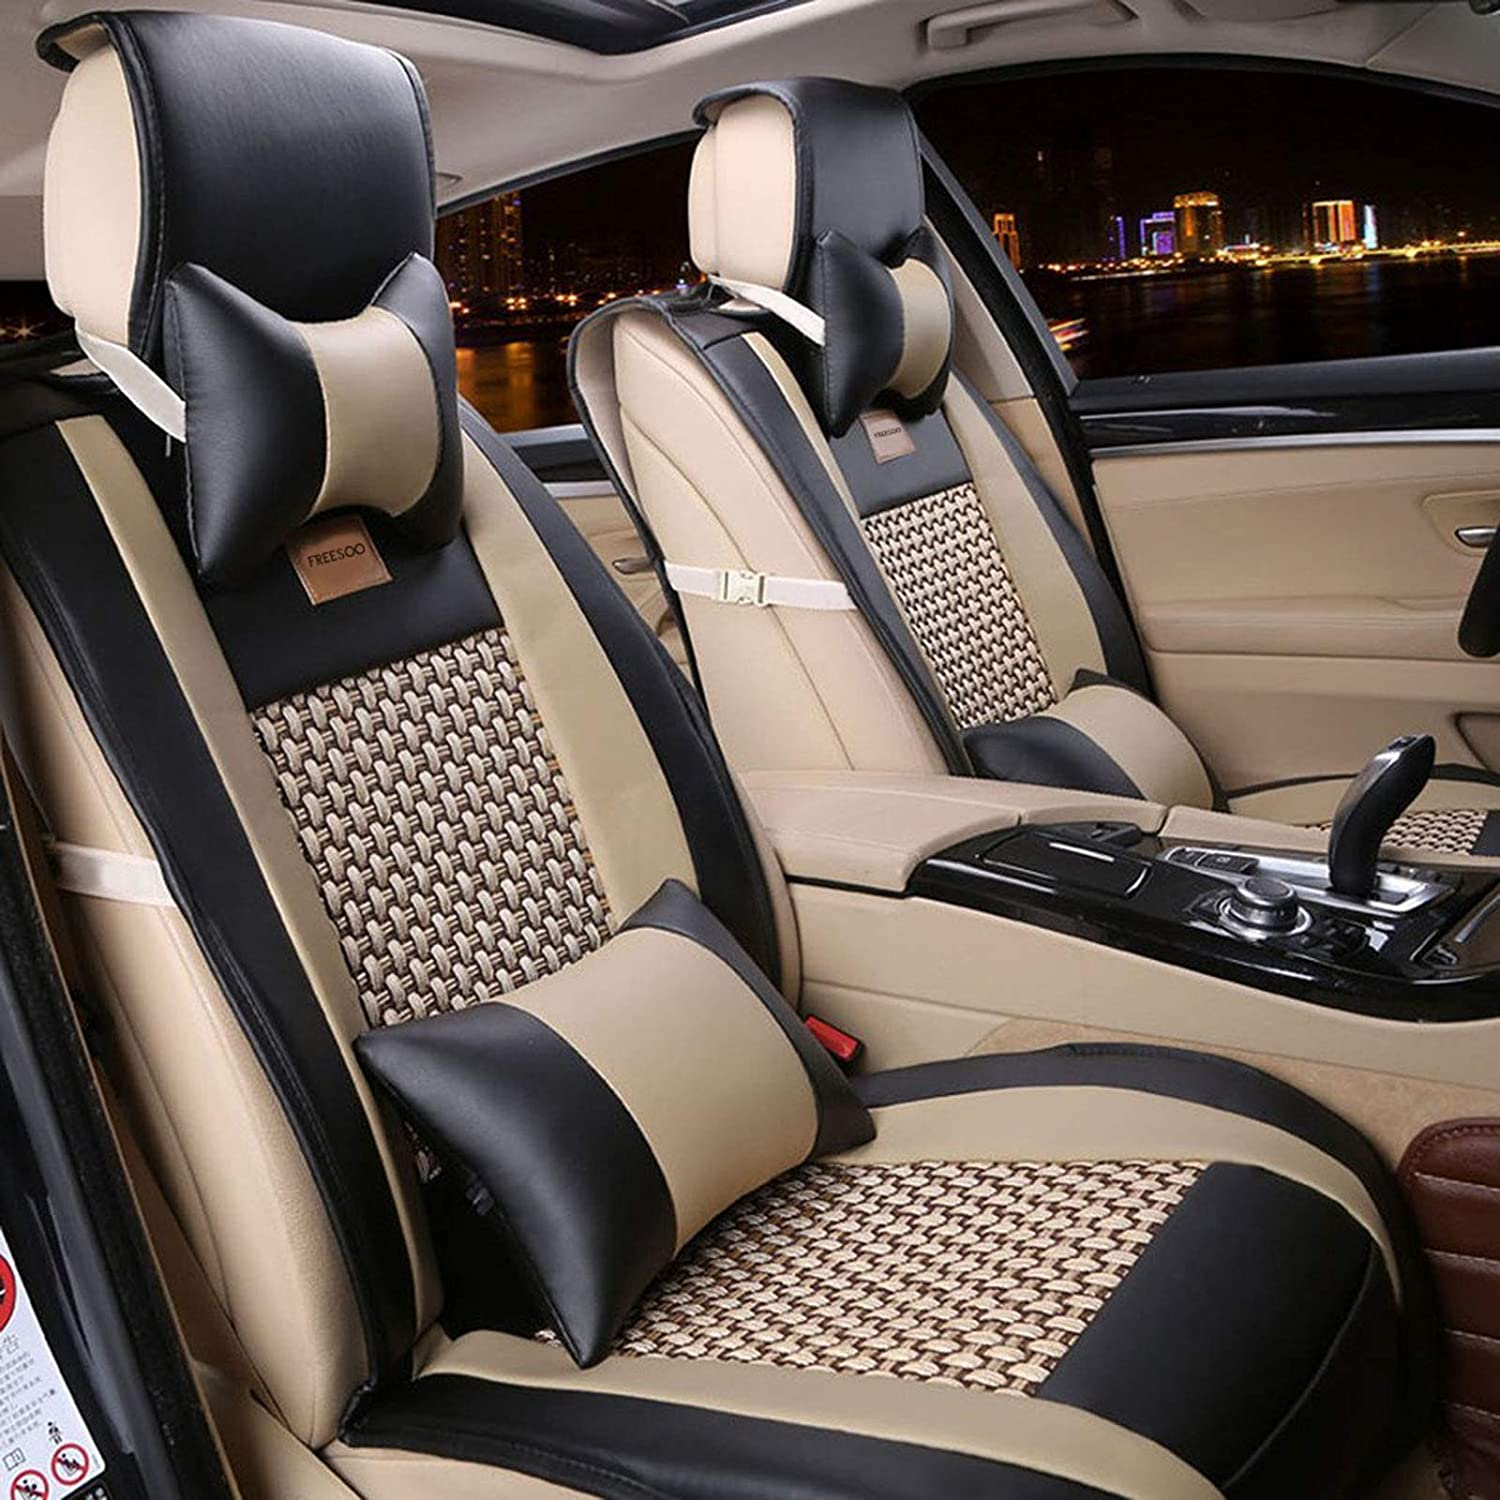 FORD FOCUS ESTATE ALL YEARS HEAVY DUTY WATERPROOF BLACK FRONT SEAT COVERS 1+1